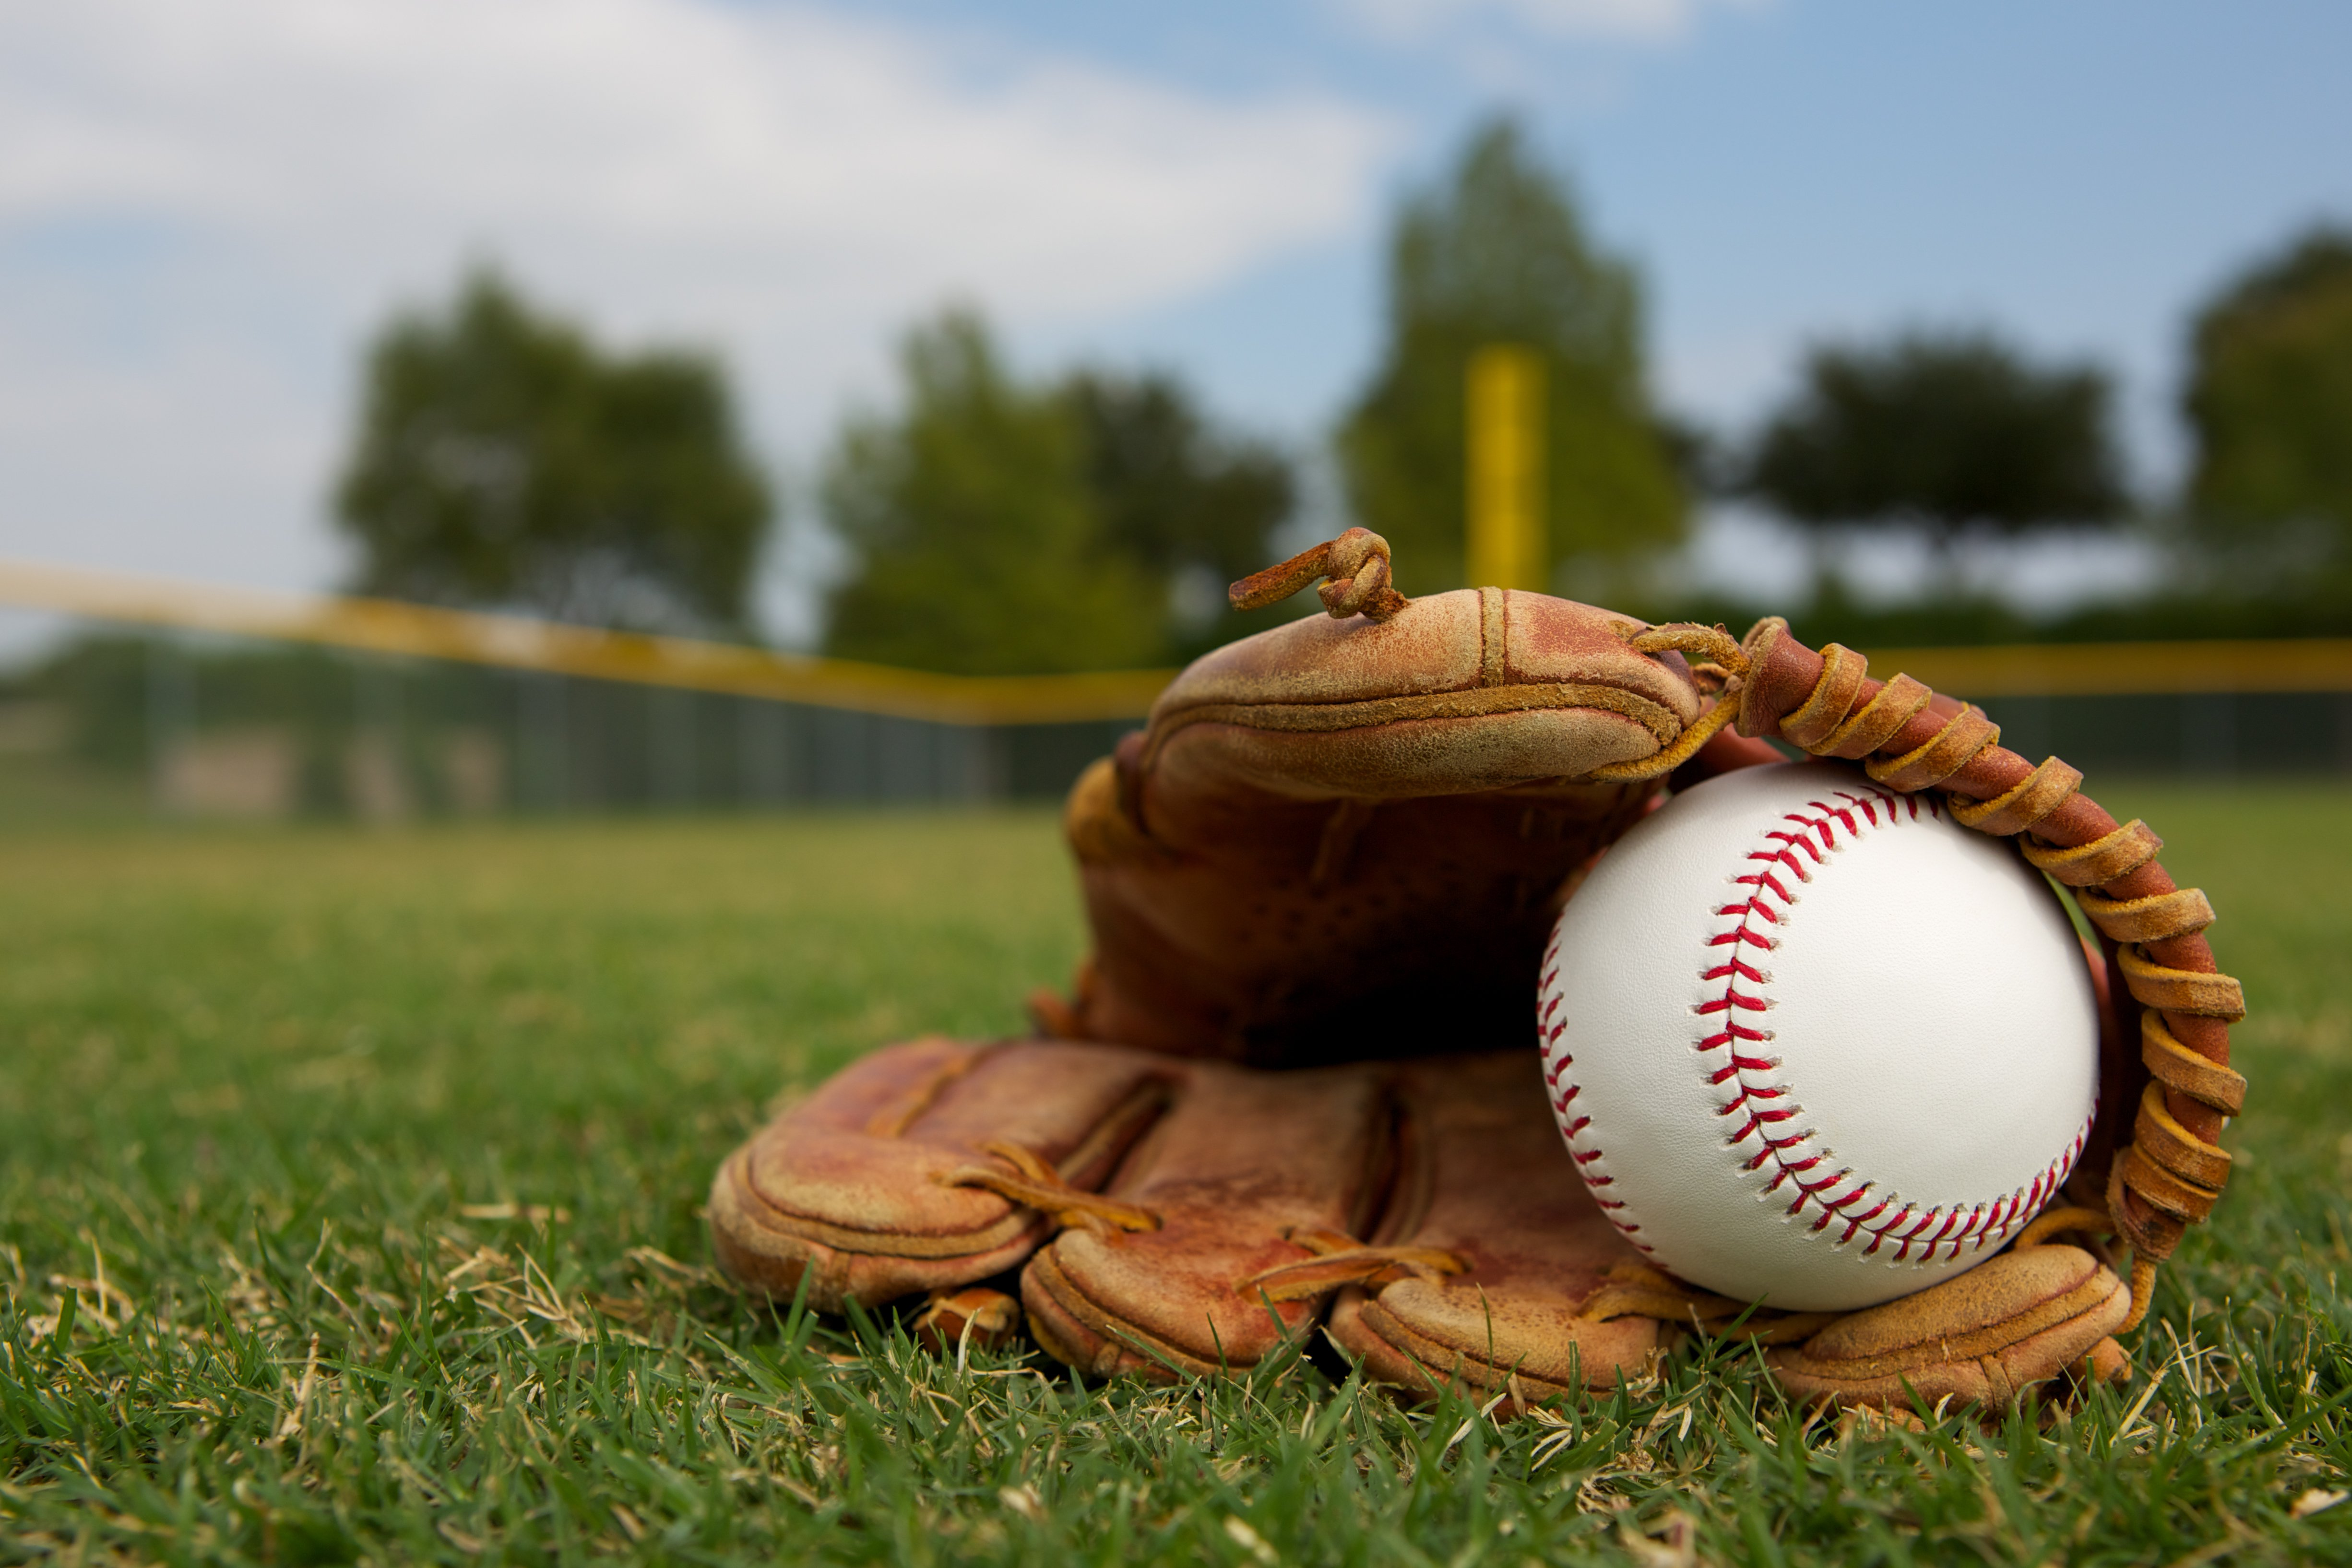 Baseball in a glove in the outfield | Photo: Shutterstock